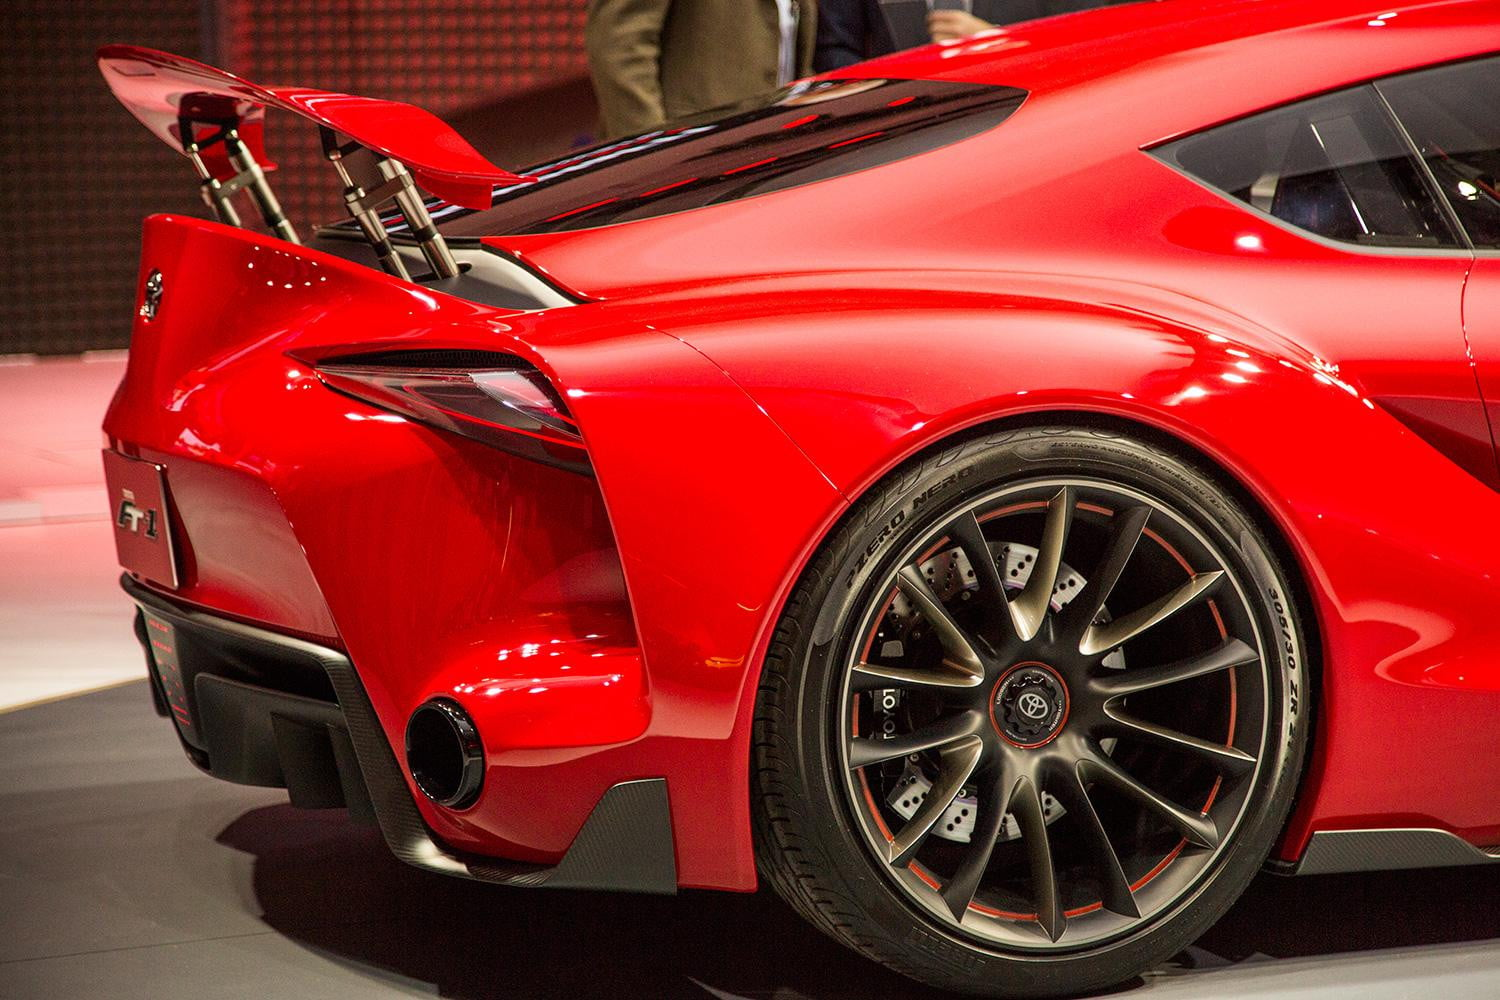 Toyota Ft1 Specs >> Toyota FT-1 Concept | Full specs, photos, and performance | Digital Trends